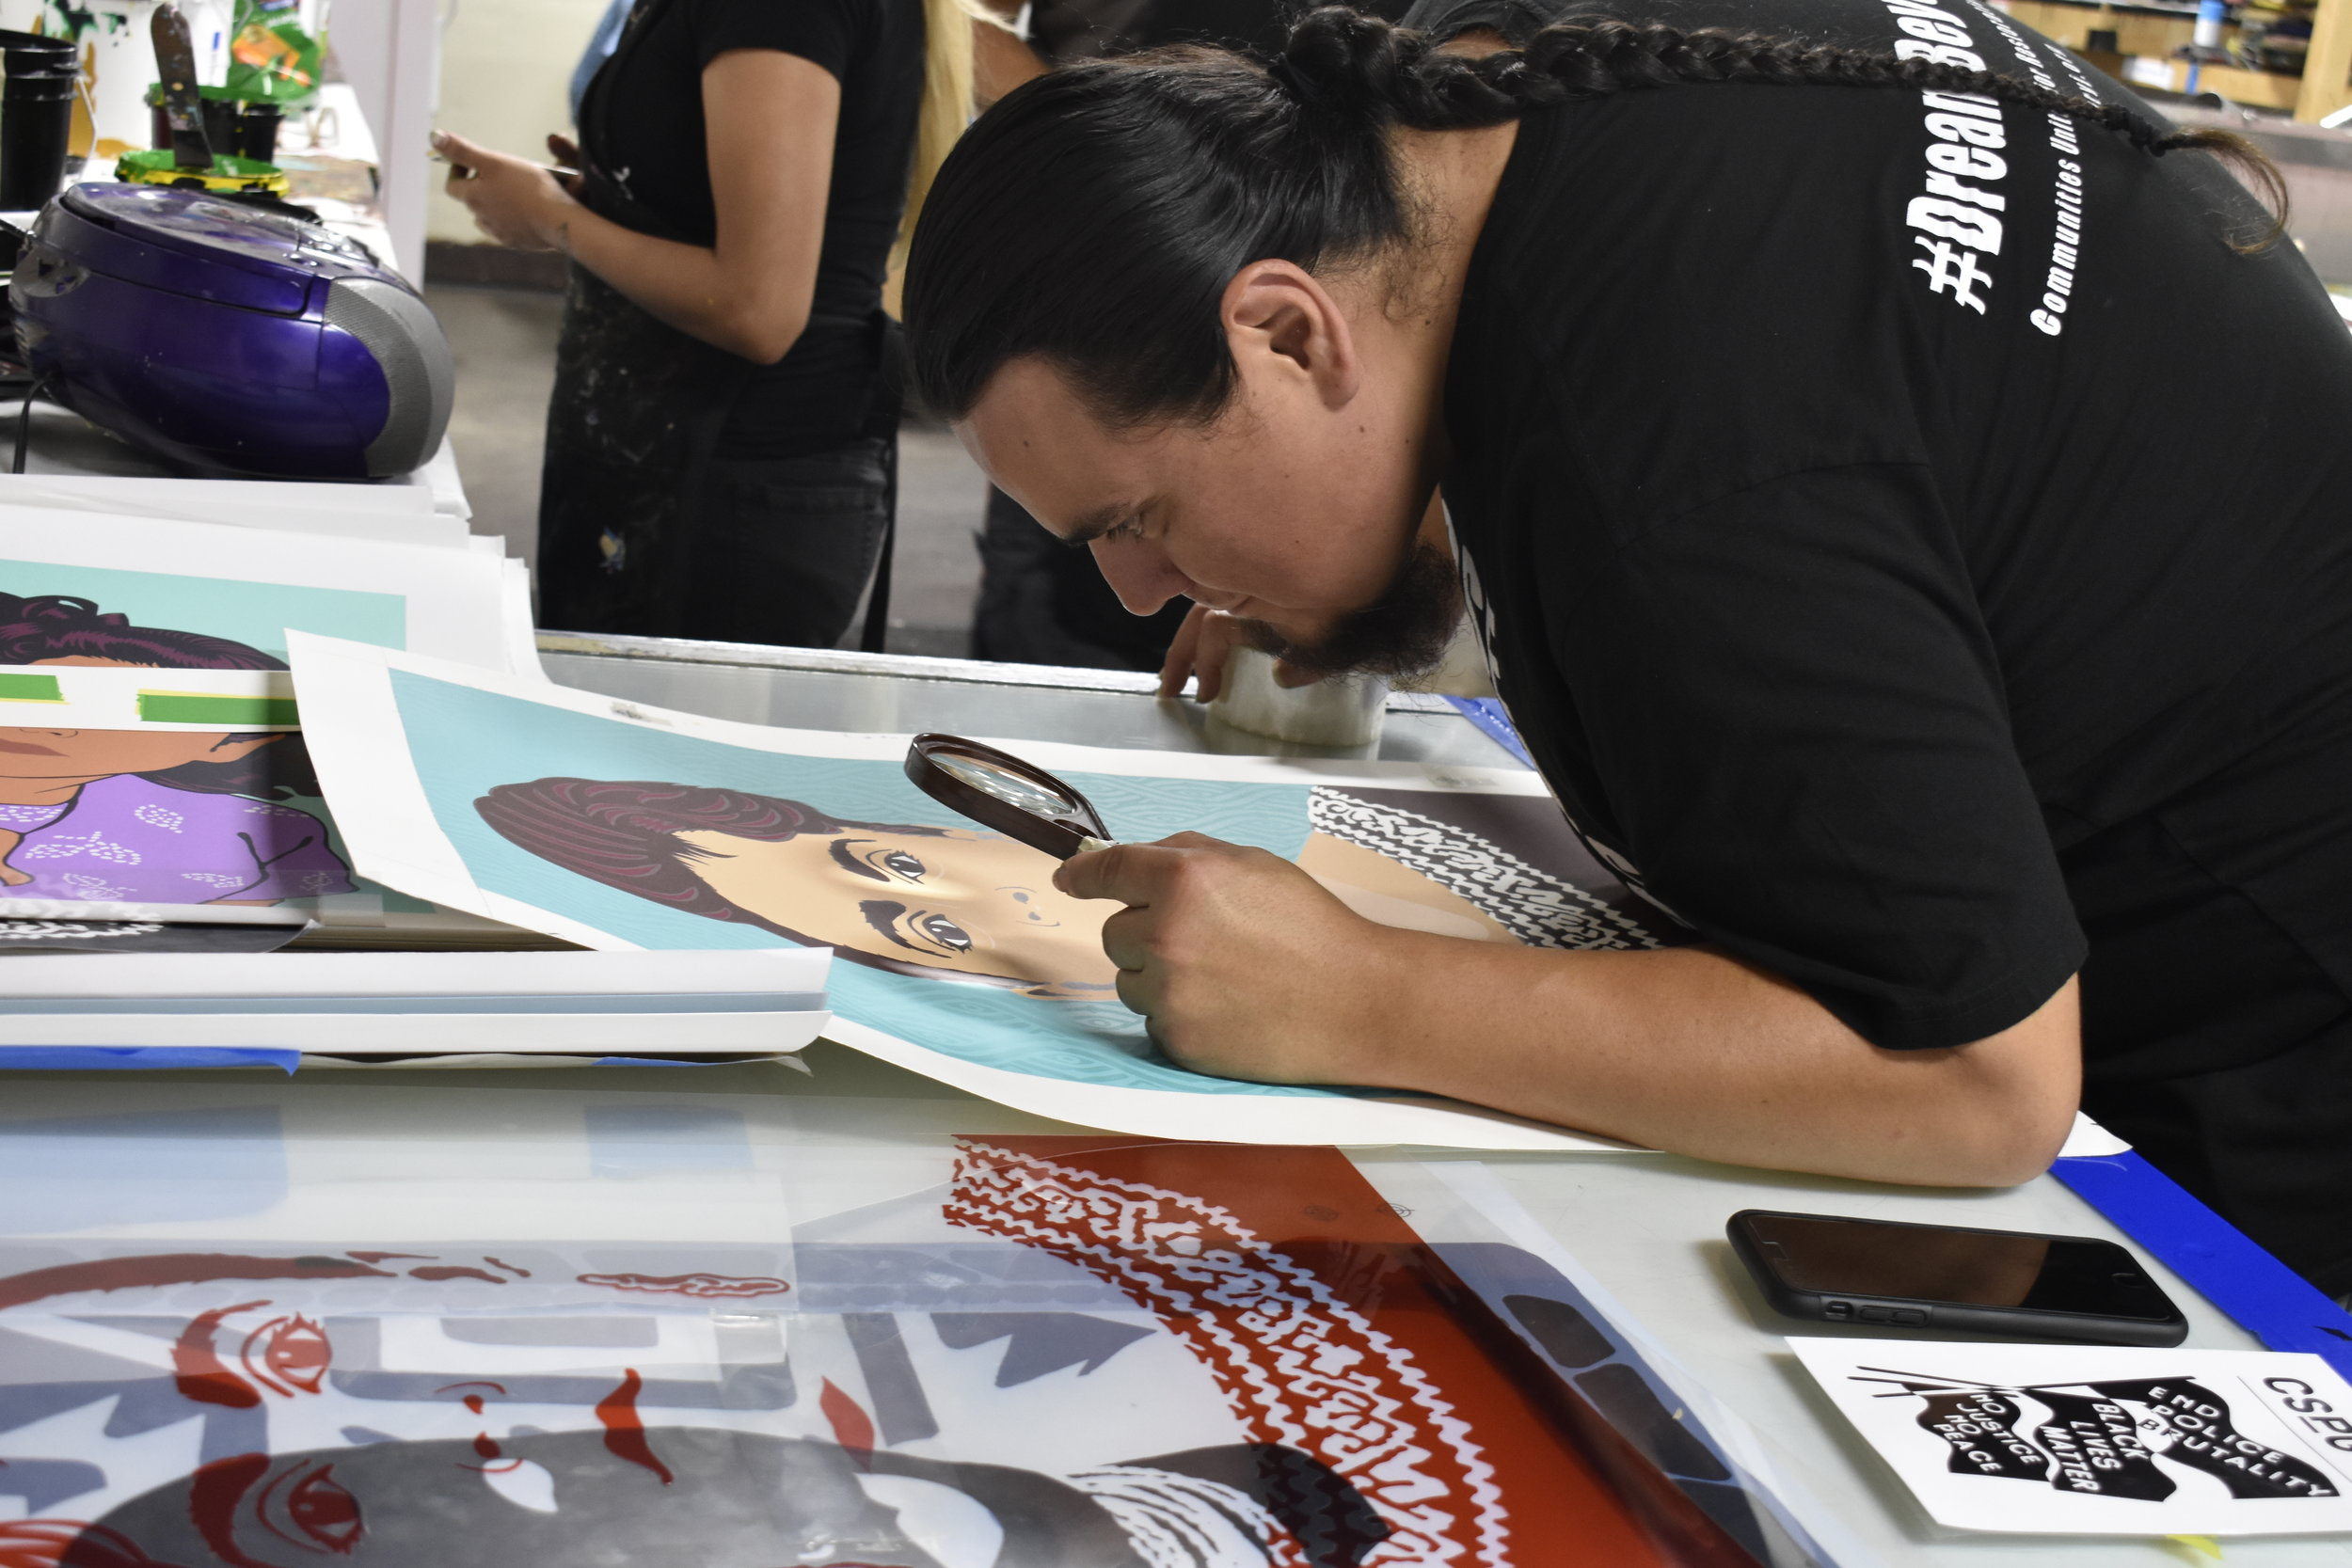 Artist Jesus Barraza from Dignidad Rebelde examines his print for quality and clarity.